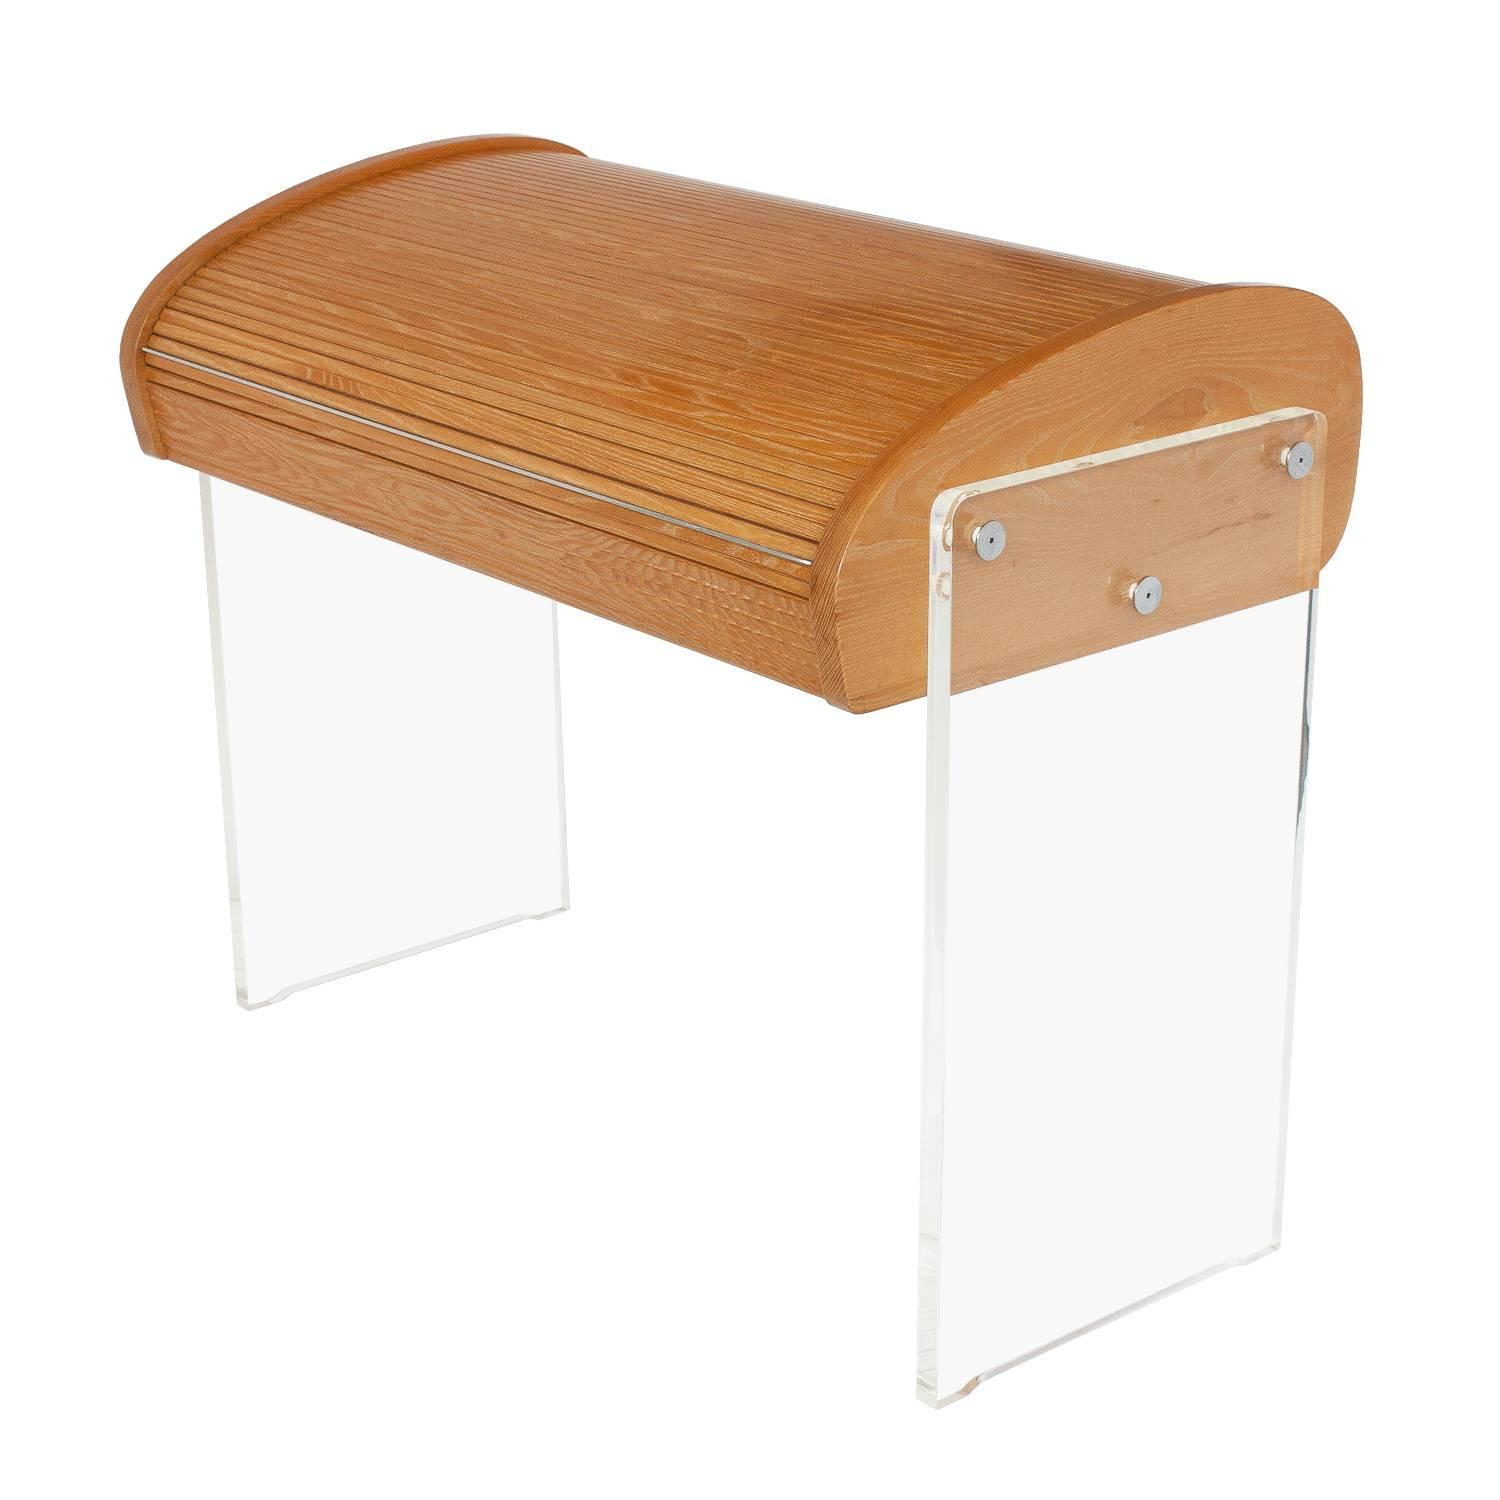 Vladimir Kagan Roll Top Writing Desk at 1stdibs